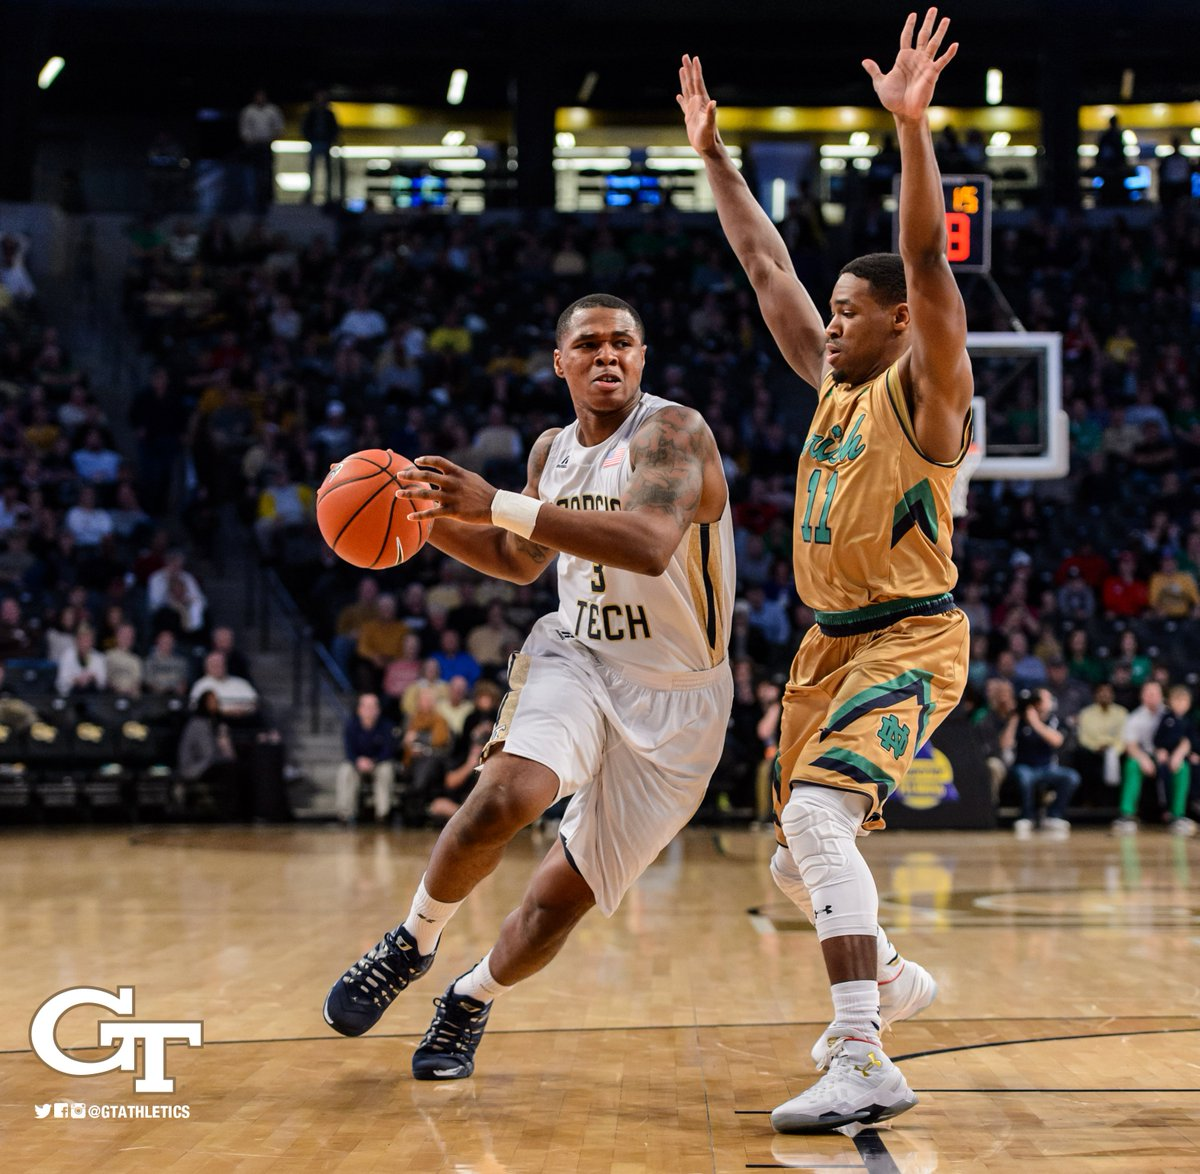 JACKETS WIN!!! Marcus Georges-Hunt DELIVERS for 63-62 win over 19th-ranked Notre Dame!!! #TogetherWeSwarm https://t.co/tBgH06K8qb